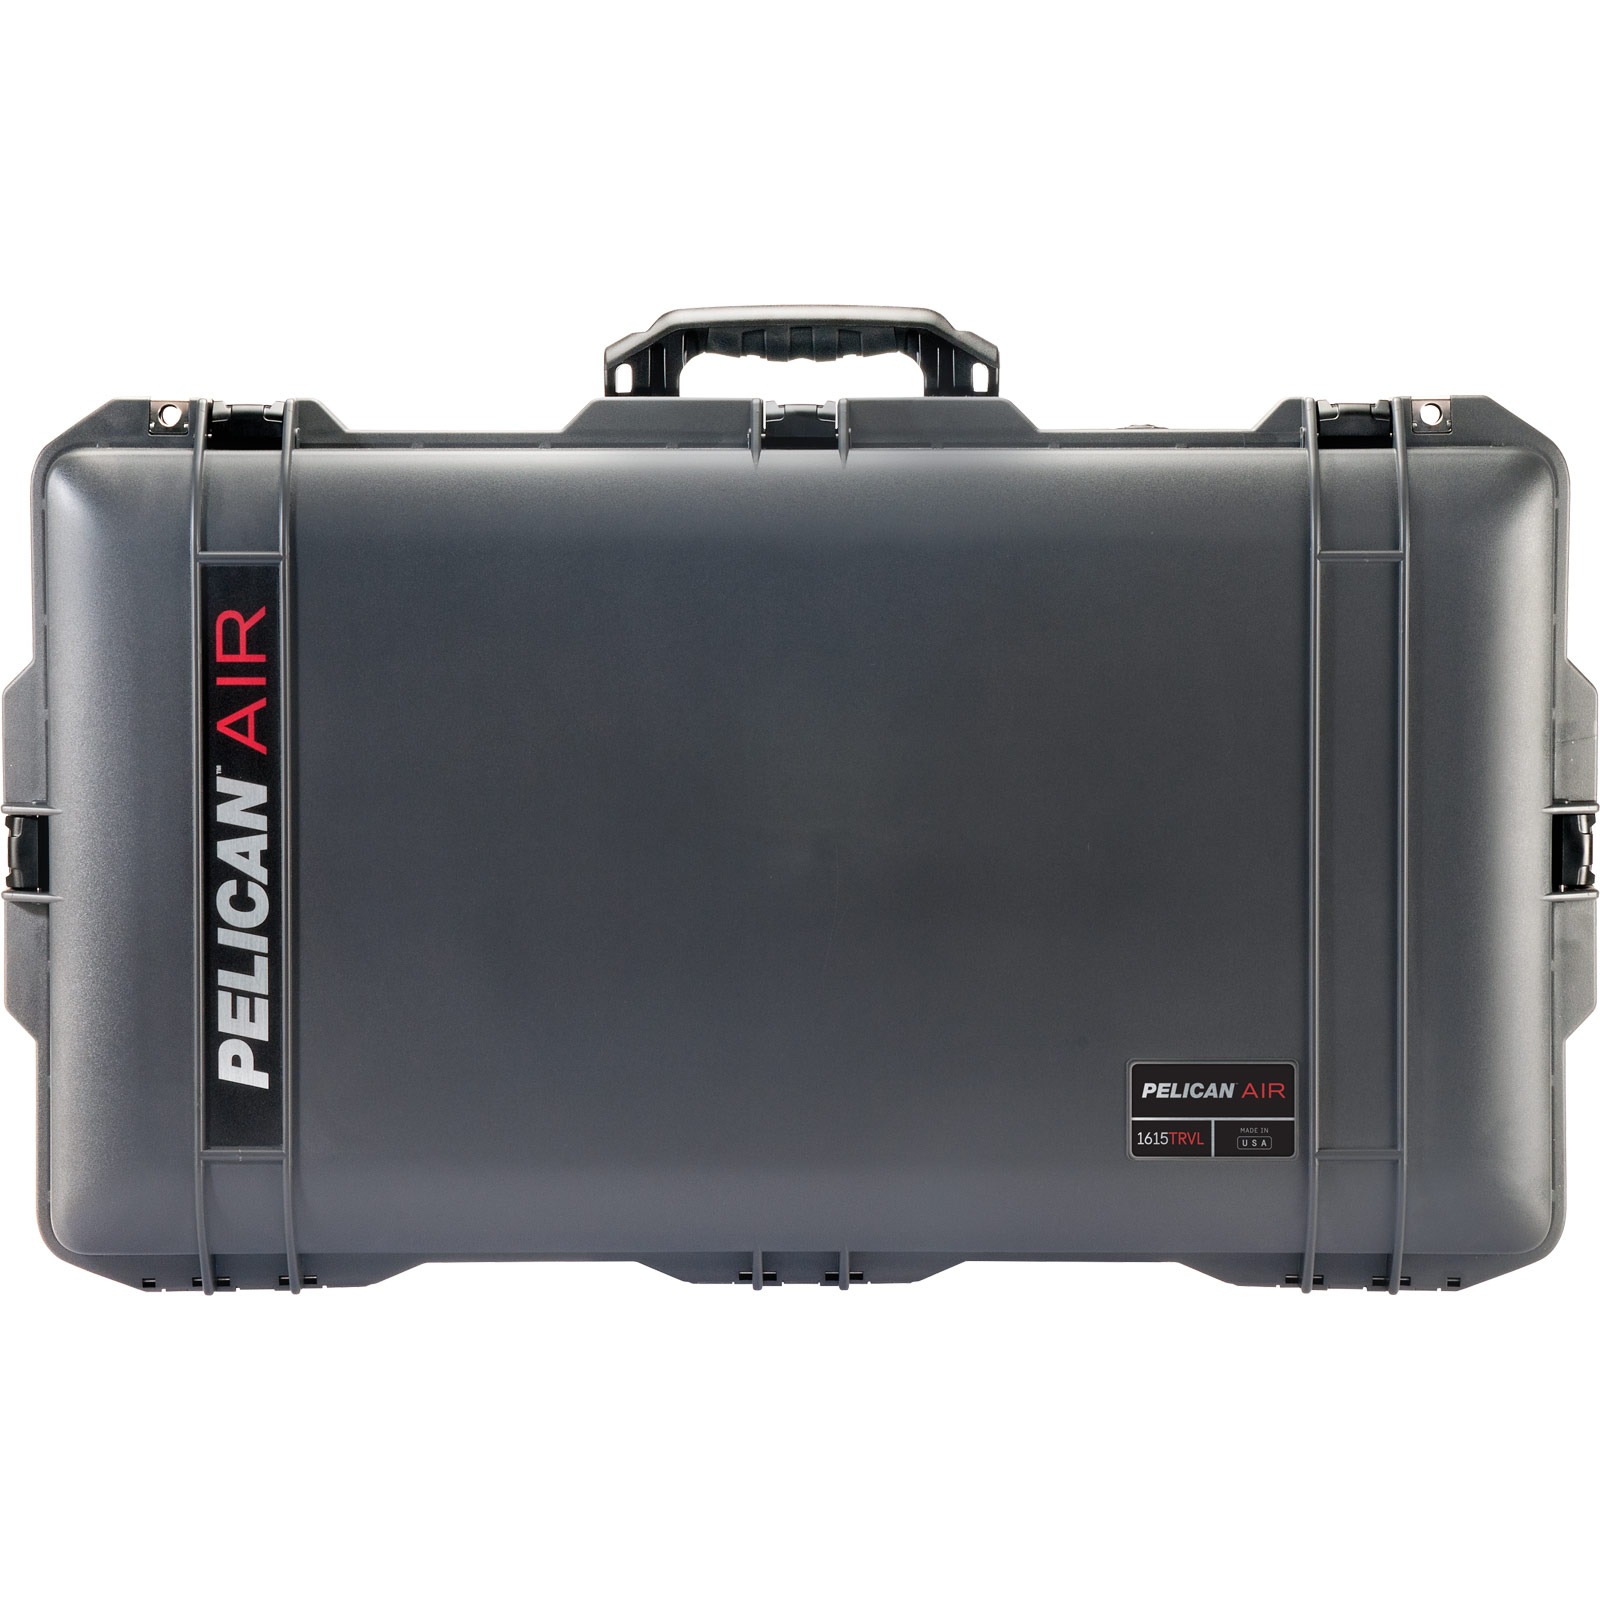 pelican 1615 organizer airline travel case